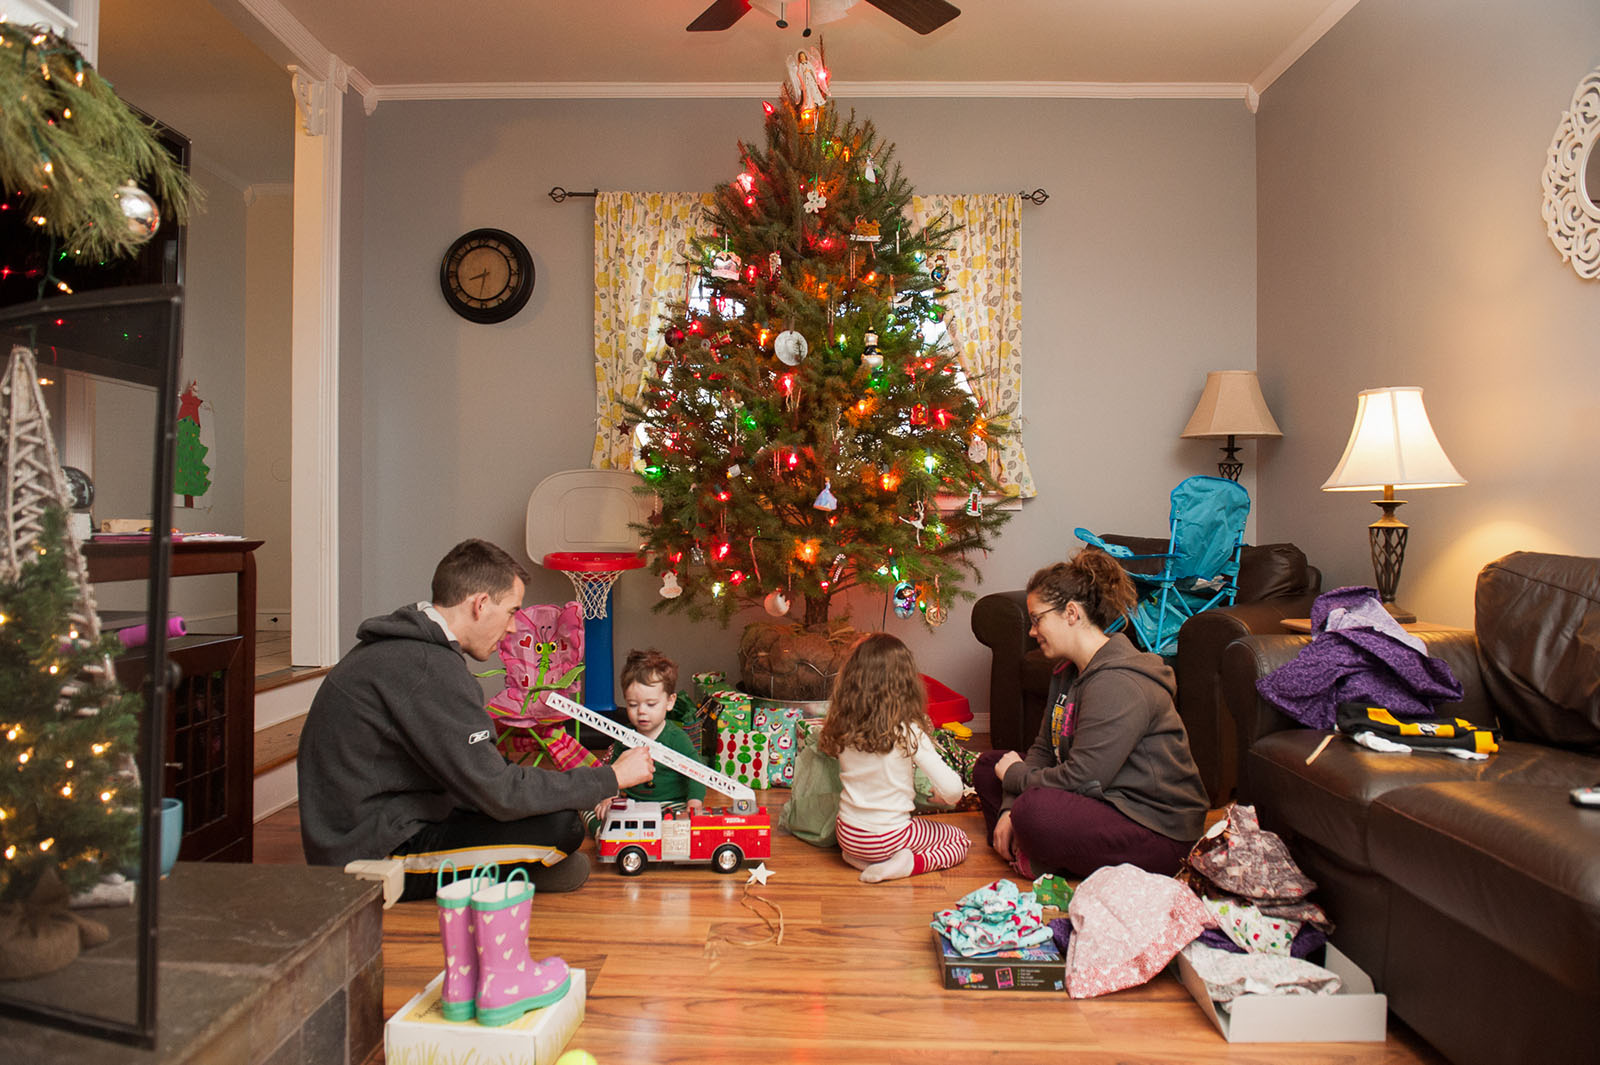 picture of family opening Christmas presents by Melissa Stottmann